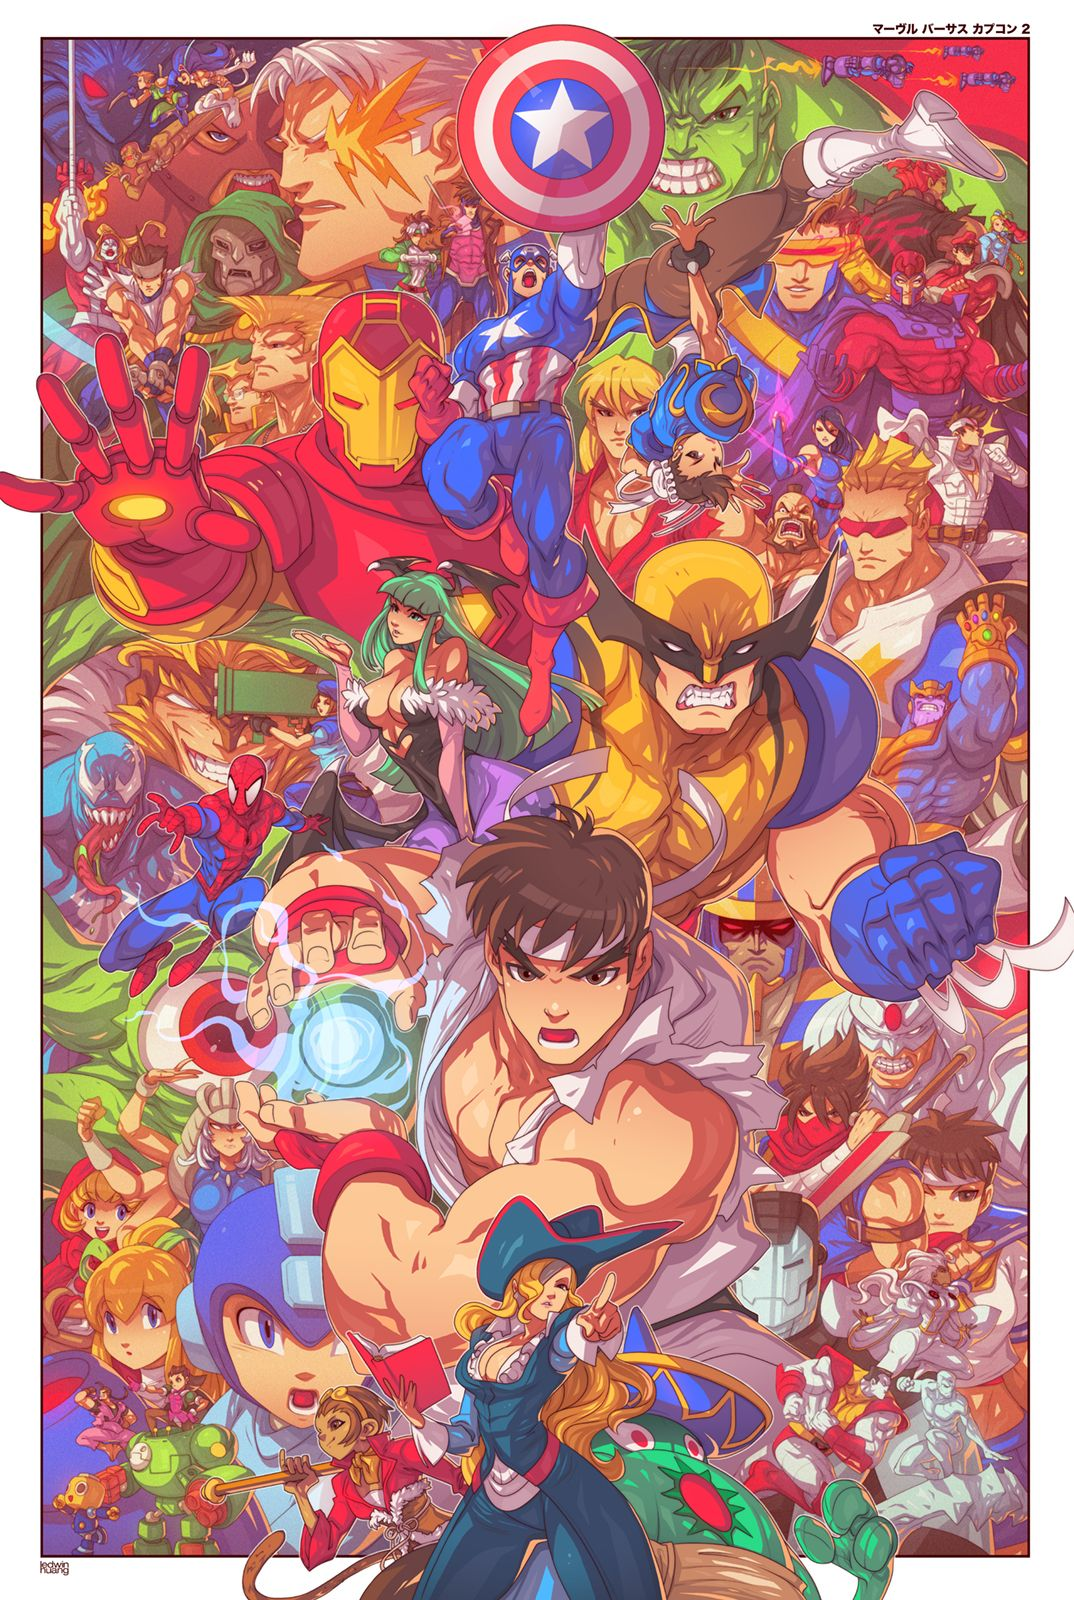 Marvel Vs Capcom 2 Capcom Art Capcom Vs Snk Marvel Vs